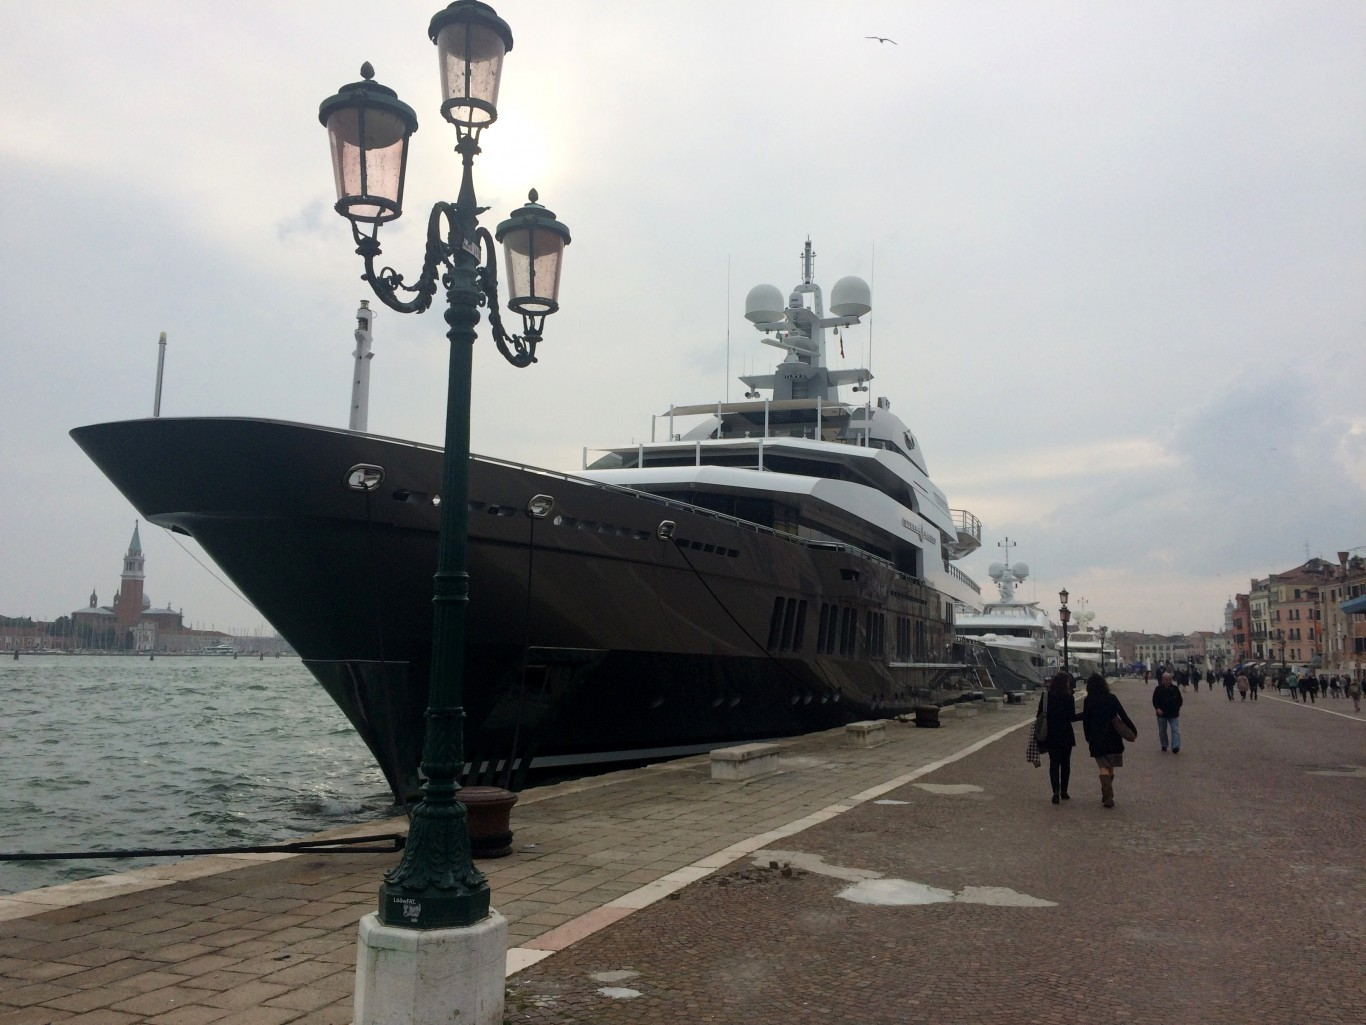 "One of the super yachts lined up on the Riva dei Sette Martiri, on the way to the Giardini. The Death Star-like <a href=""https://y.co/yacht/stella-maris"" target=""_blank"" rel=""noopener noreferrer"">Stella Maris</a> was by far the most impressive in the billionaire-mile line up."